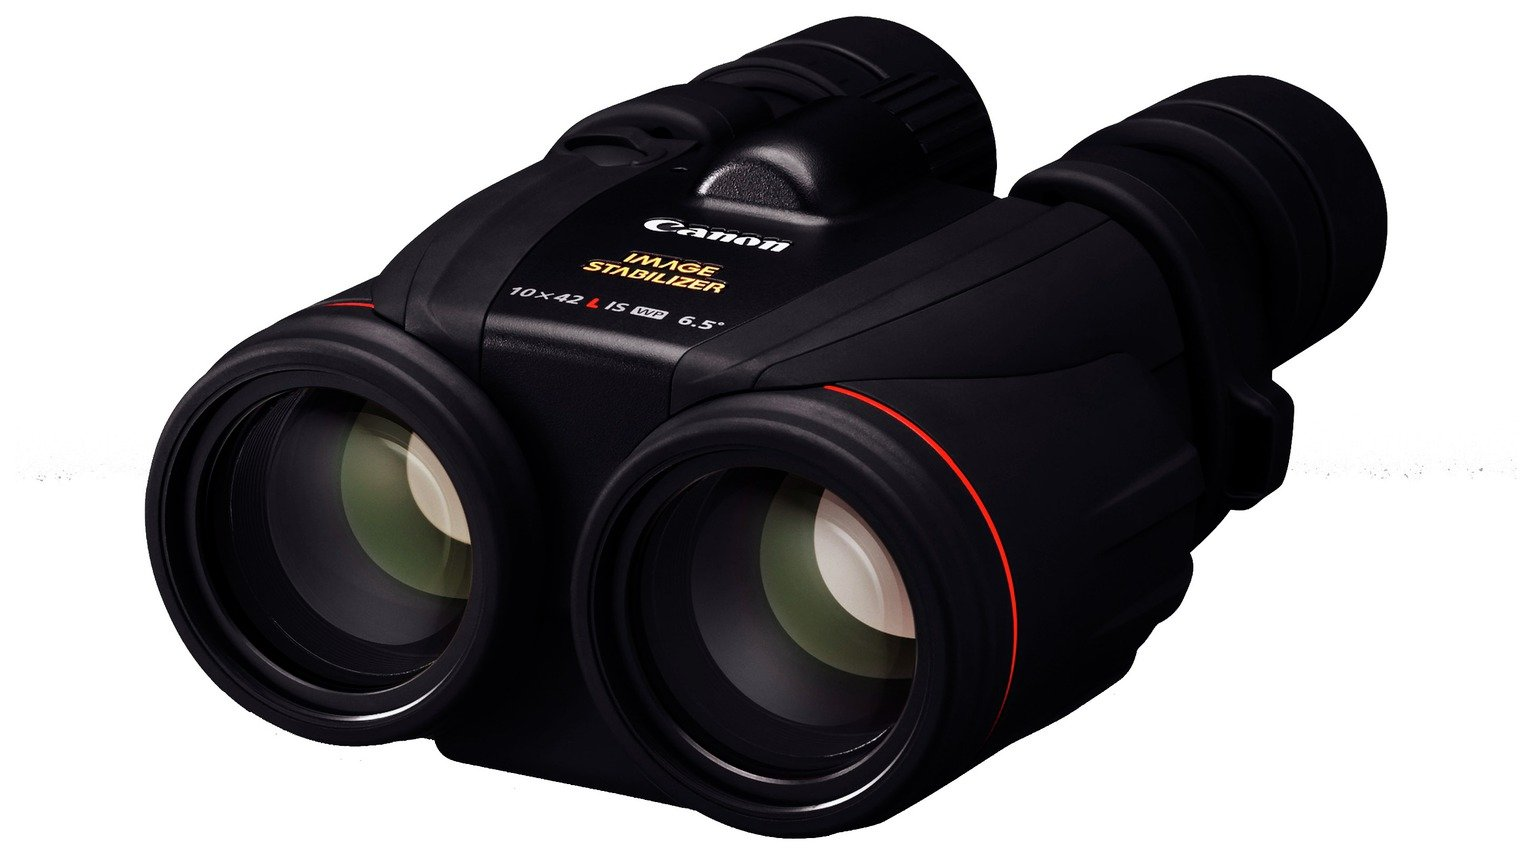 Canon 10 x 42L IS WP Binoculars from canon